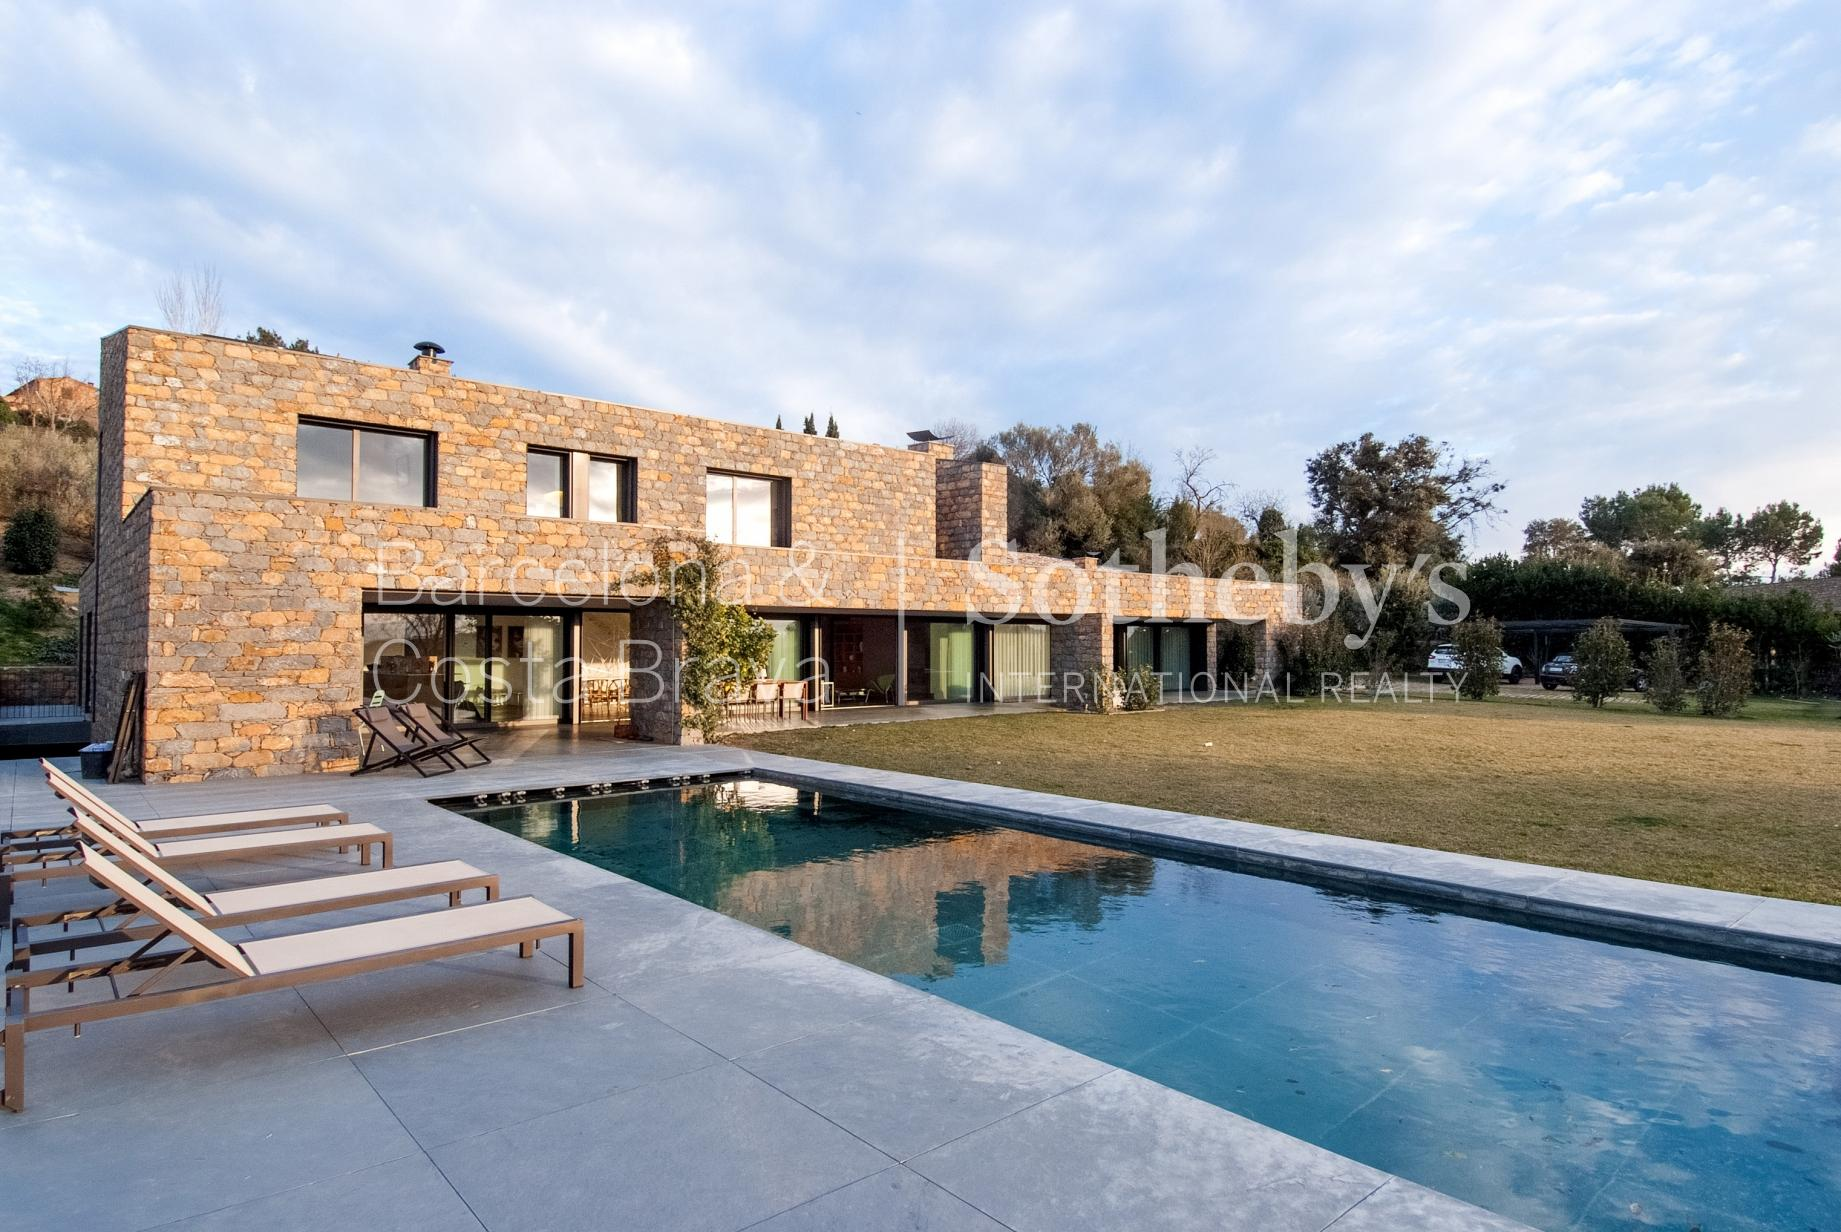 Single Family Home for Sale at Modern house in the interior a few kilometres from the Golf and Beach Other Cities Baix Emporda, Barcelona 17001 Spain